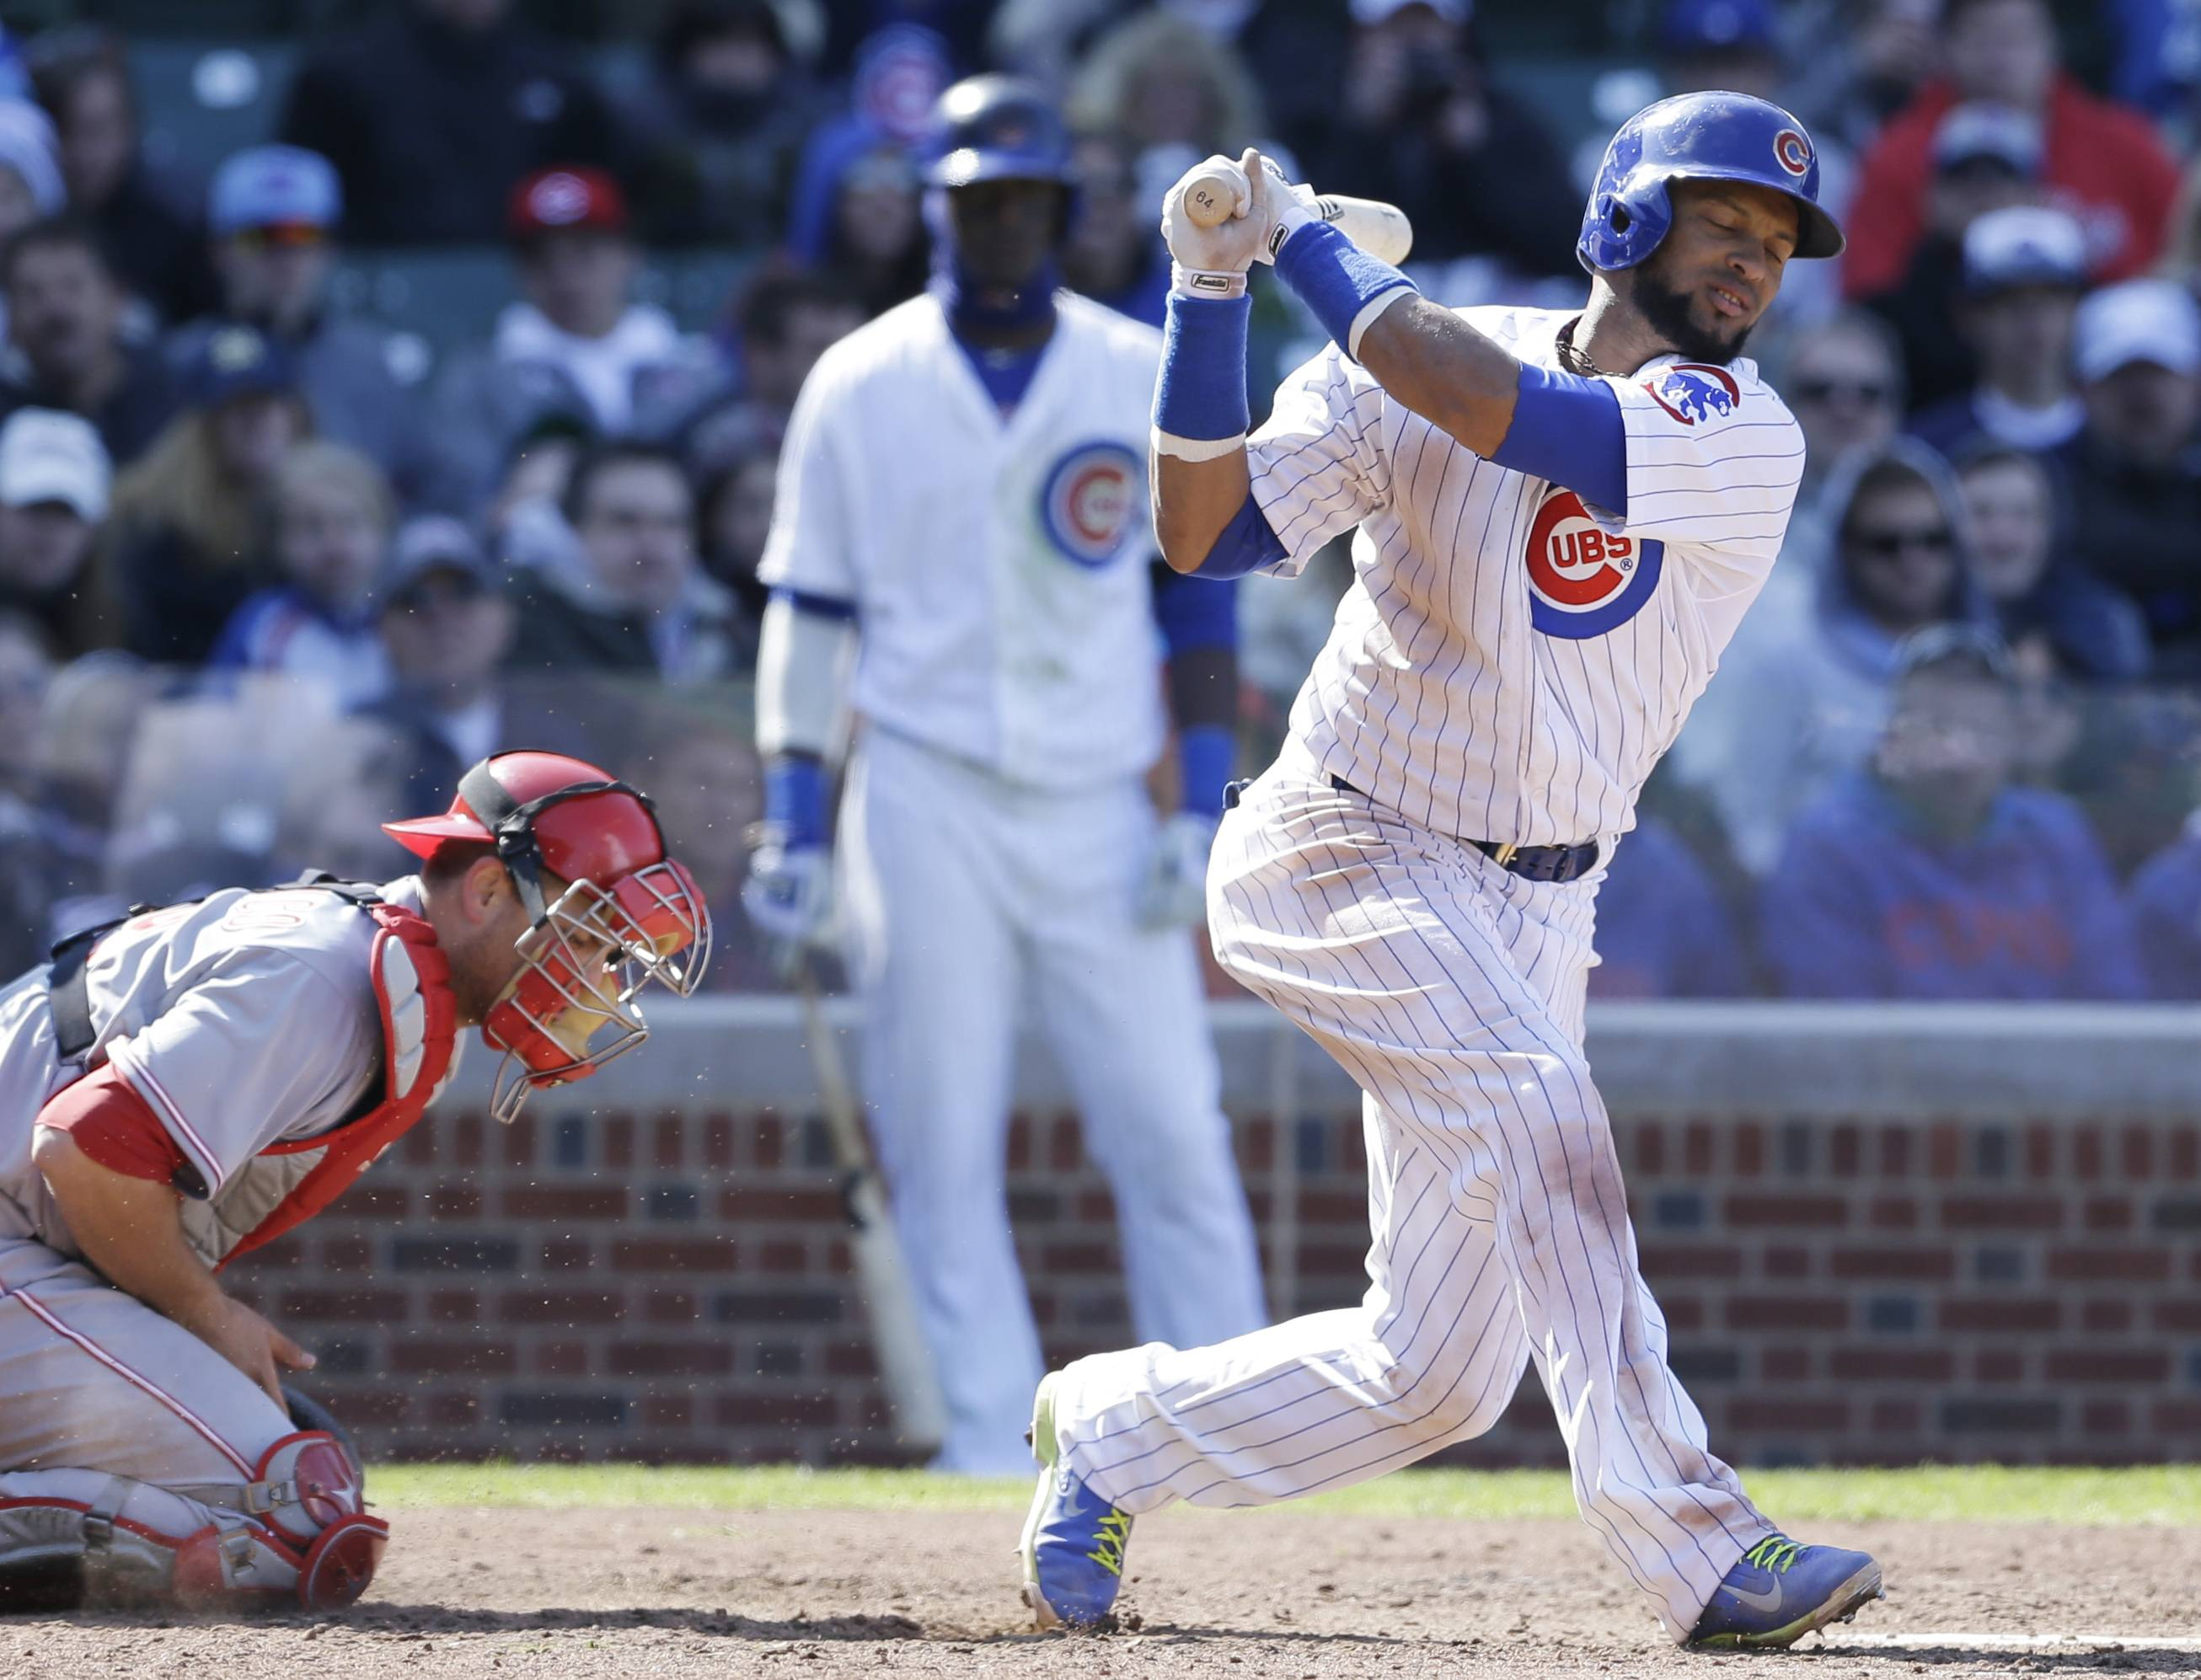 Chicago Cubs' Emilio Bonifacio, right, strikes out swinging during the seventh inning of a baseball game against the Cincinnati Reds in Chicago, Friday, April  18, 2014. The Reds won 4-1.